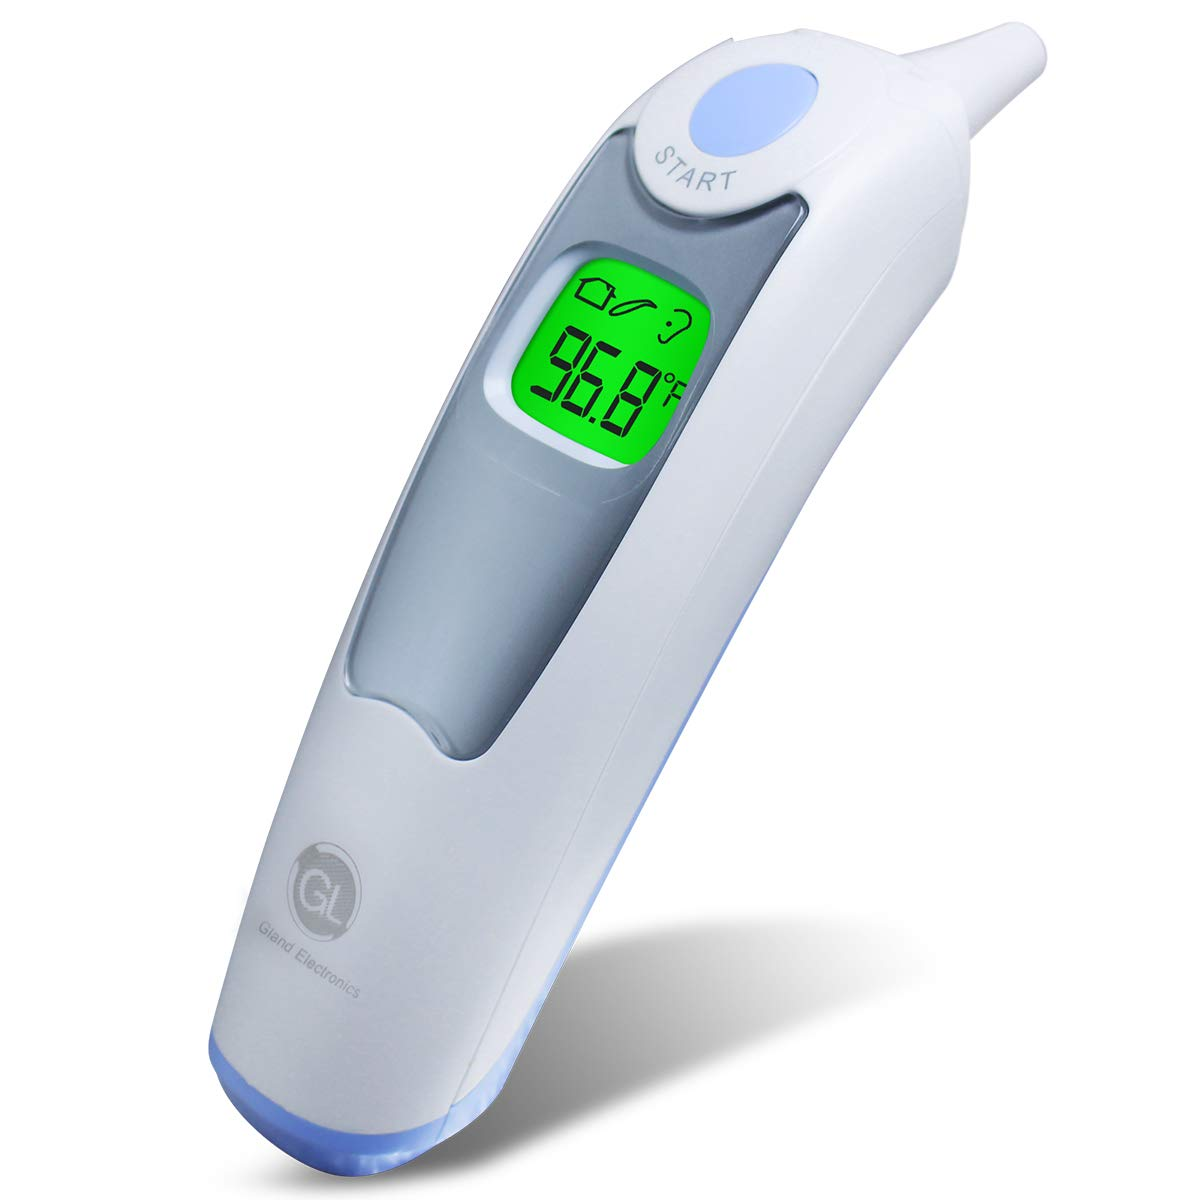 Baby Ear Thermometer for Fever Gland Medical Digital Ear Thermometer for Baby, Infants,Toddlers, and Adults FDA Approved